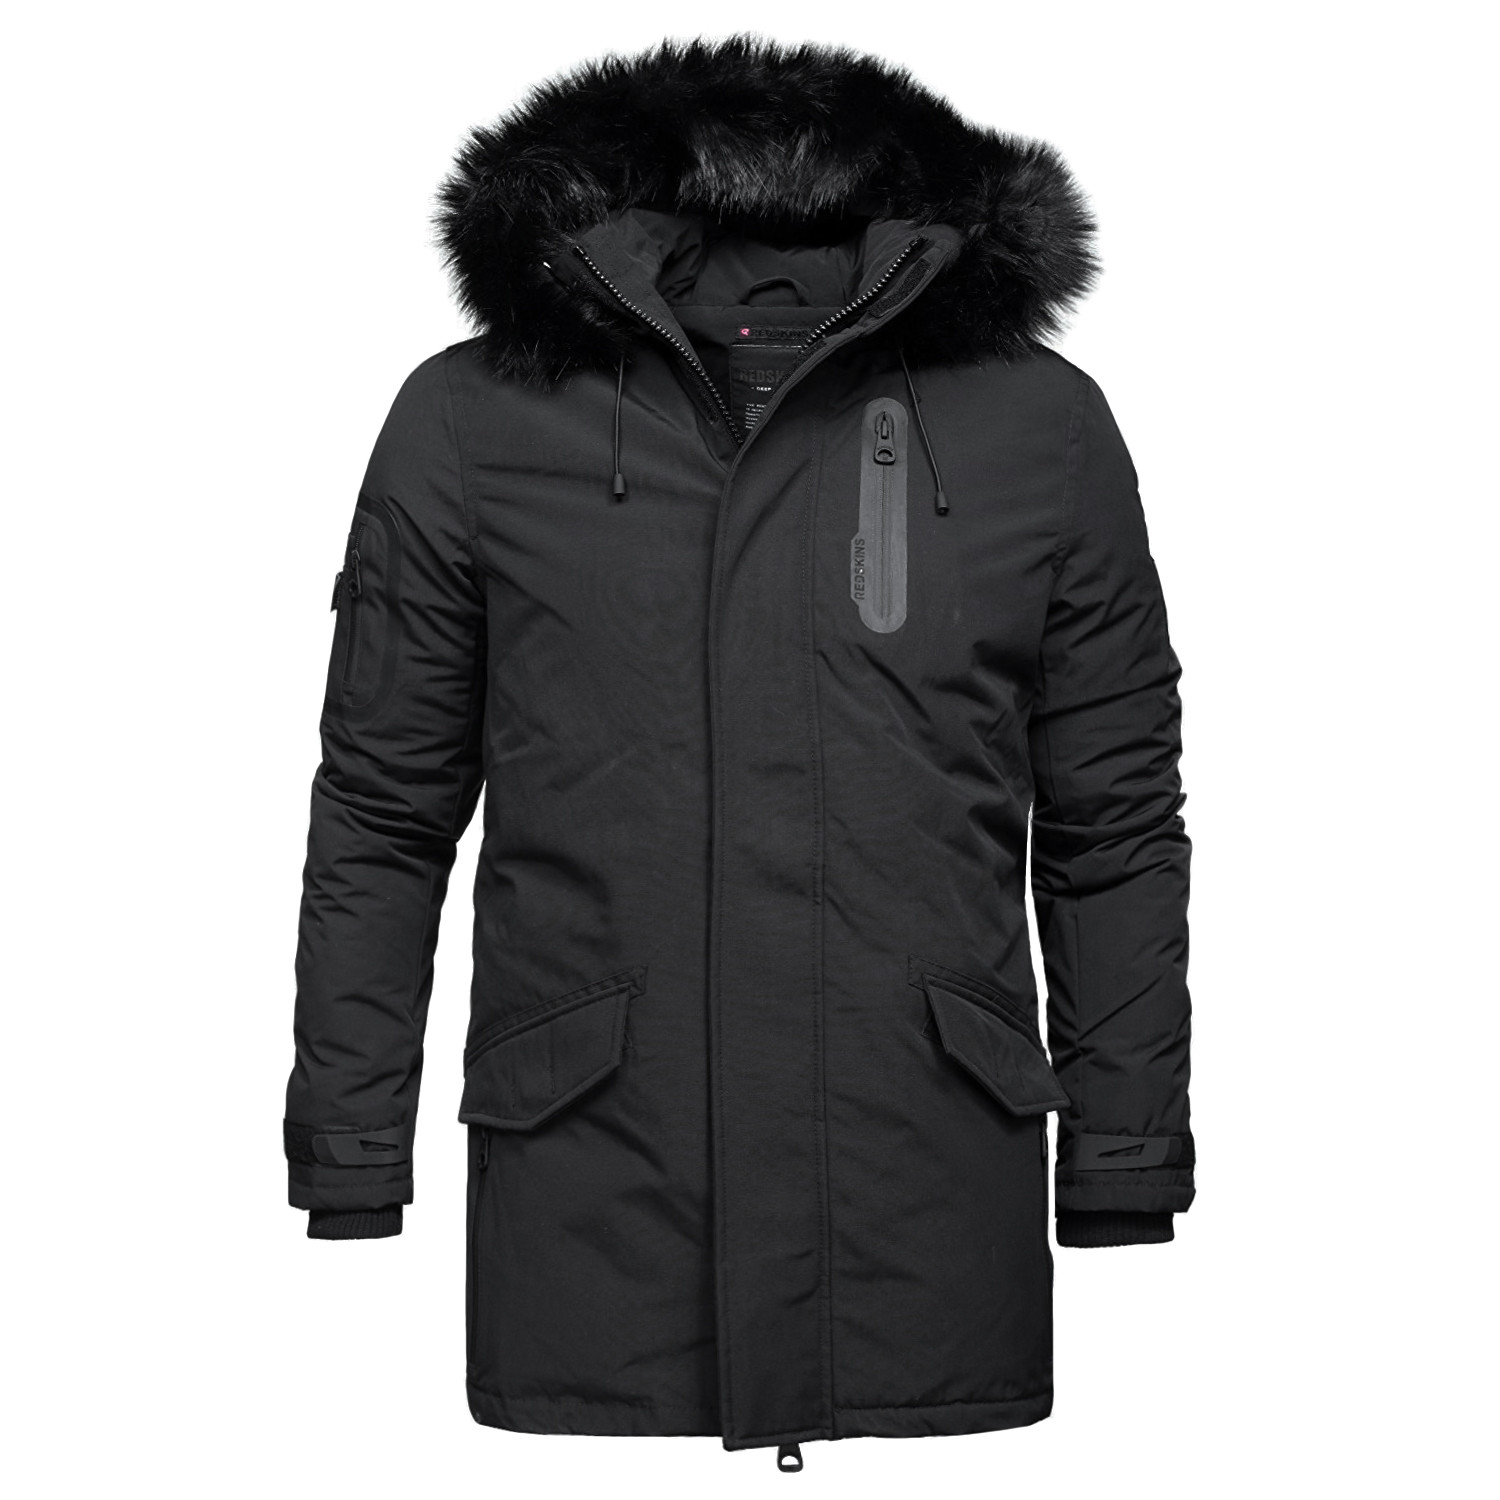 duster homeland parka homme noir pas cher parkas homme redskins discount. Black Bedroom Furniture Sets. Home Design Ideas